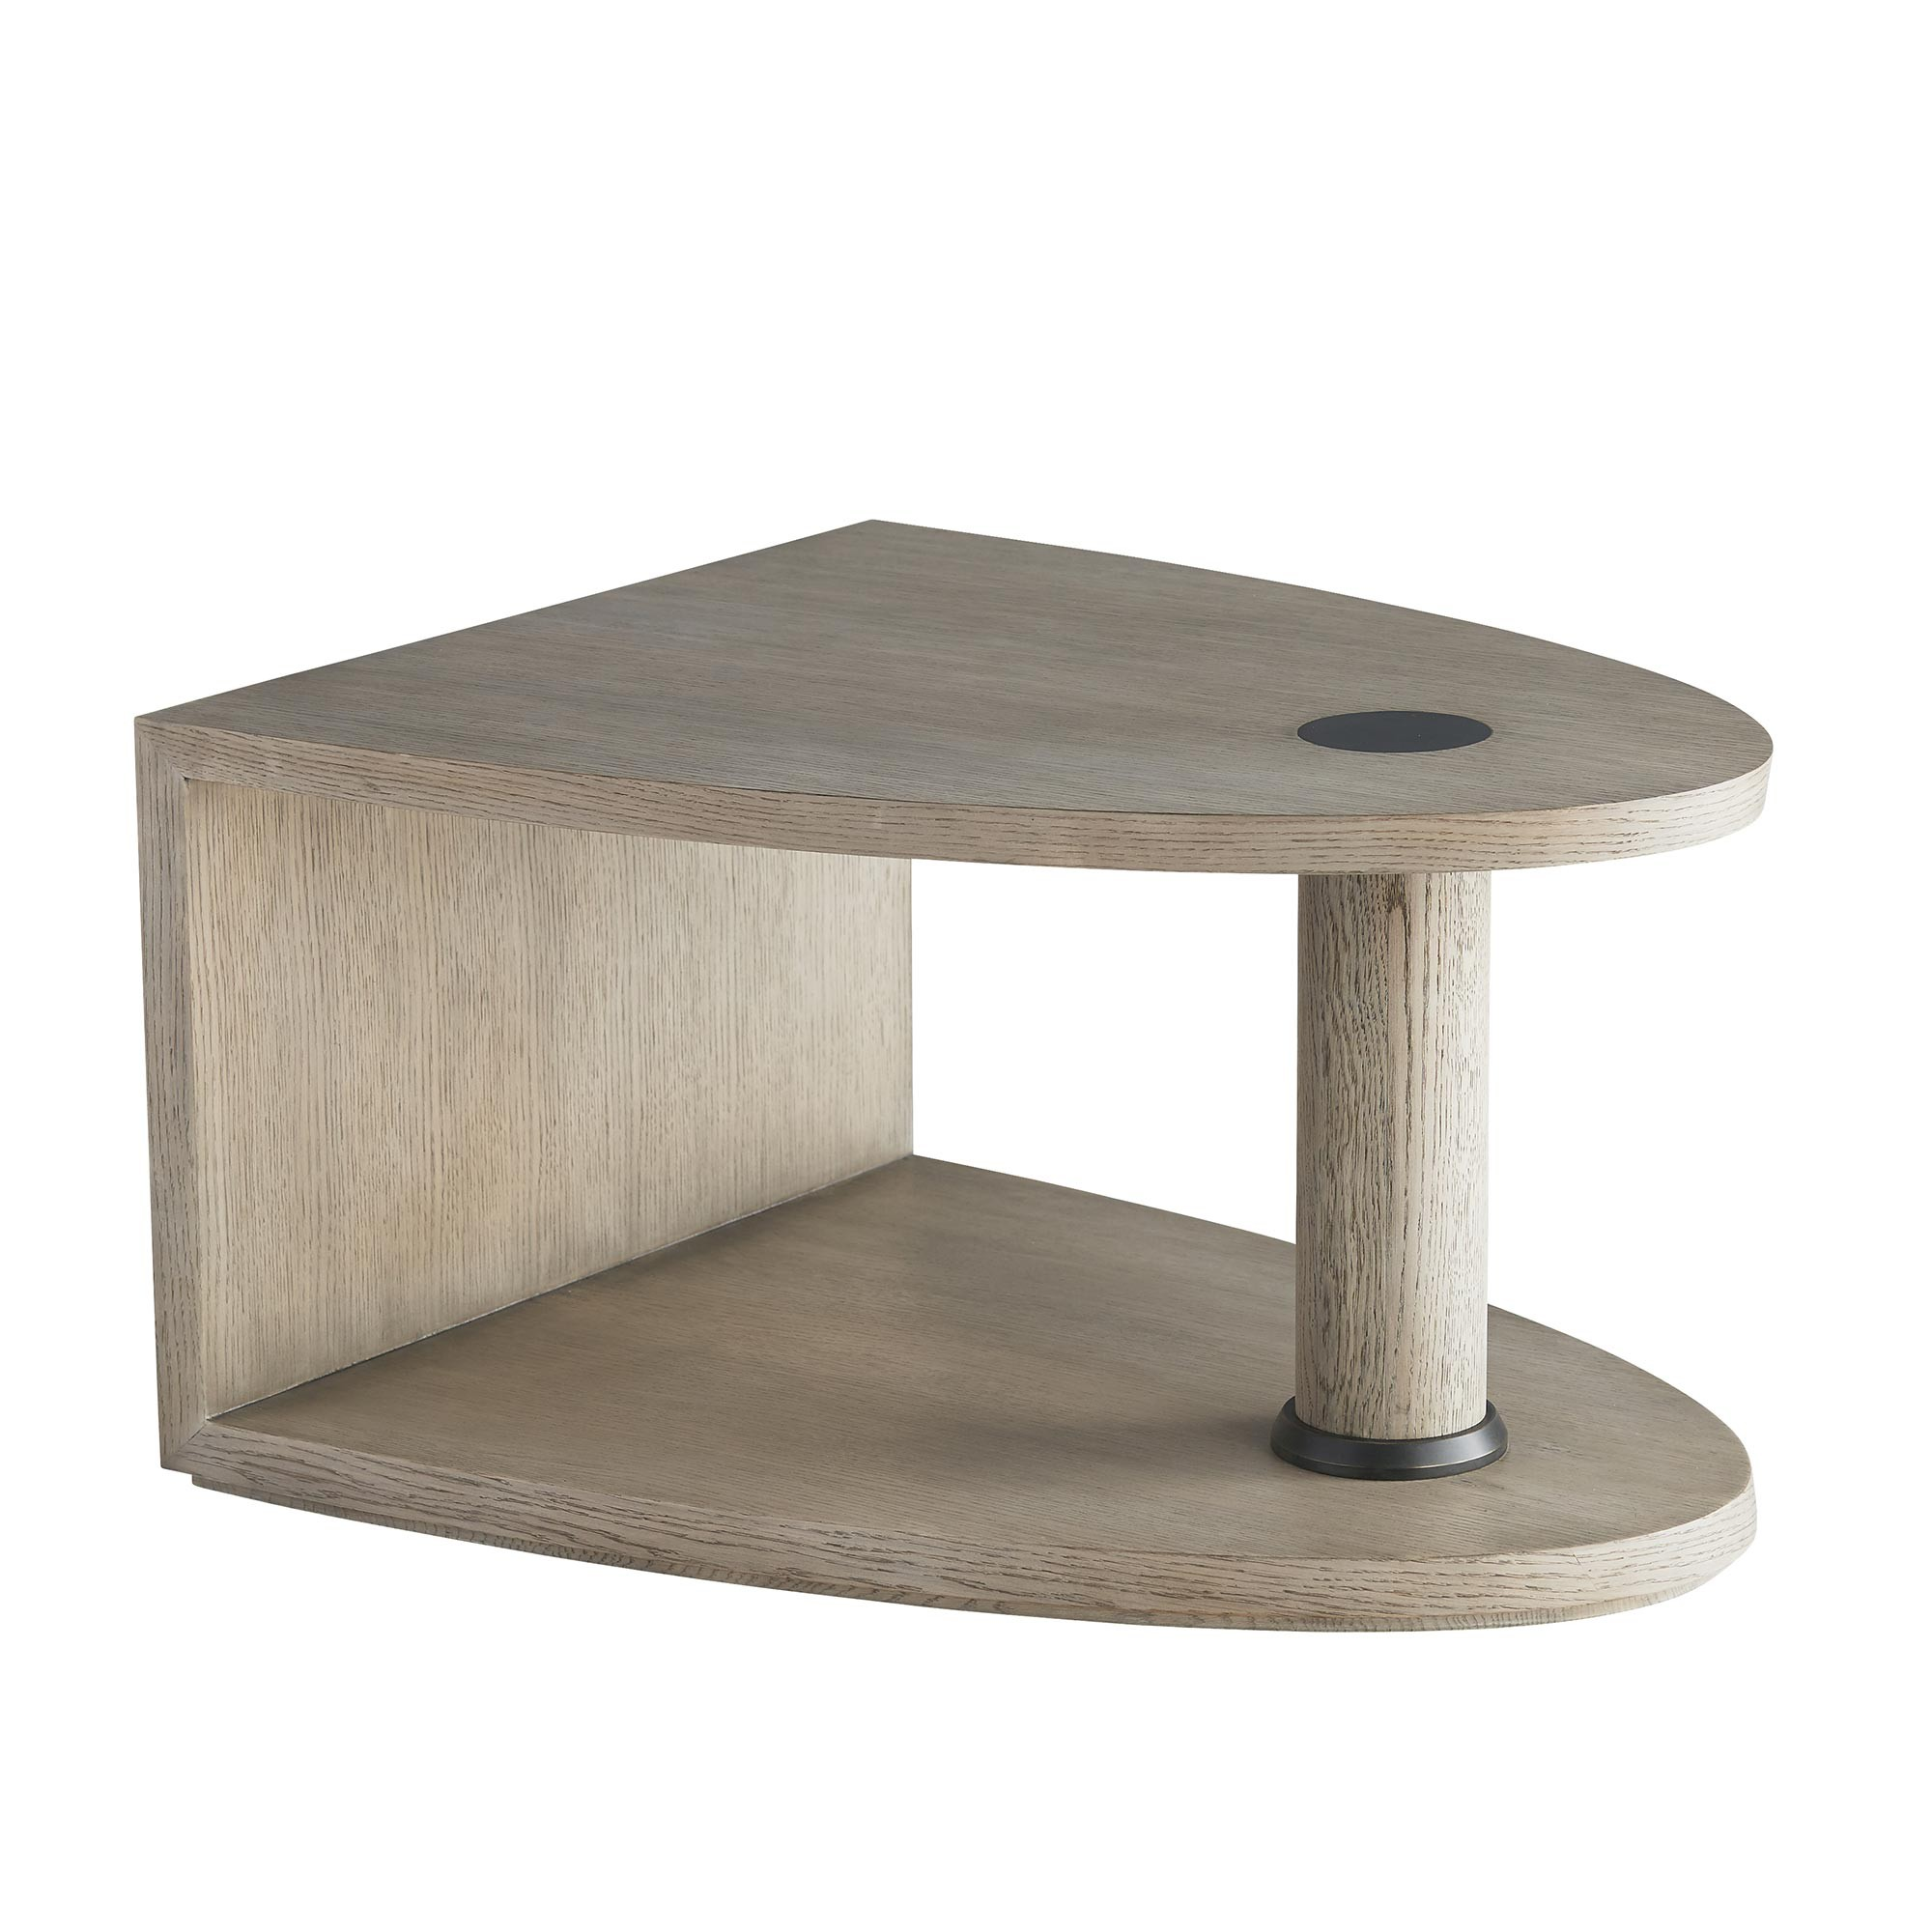 Pulp Home - Konnie Short Cocktail Table - Oblong Oval Small Coffee Table